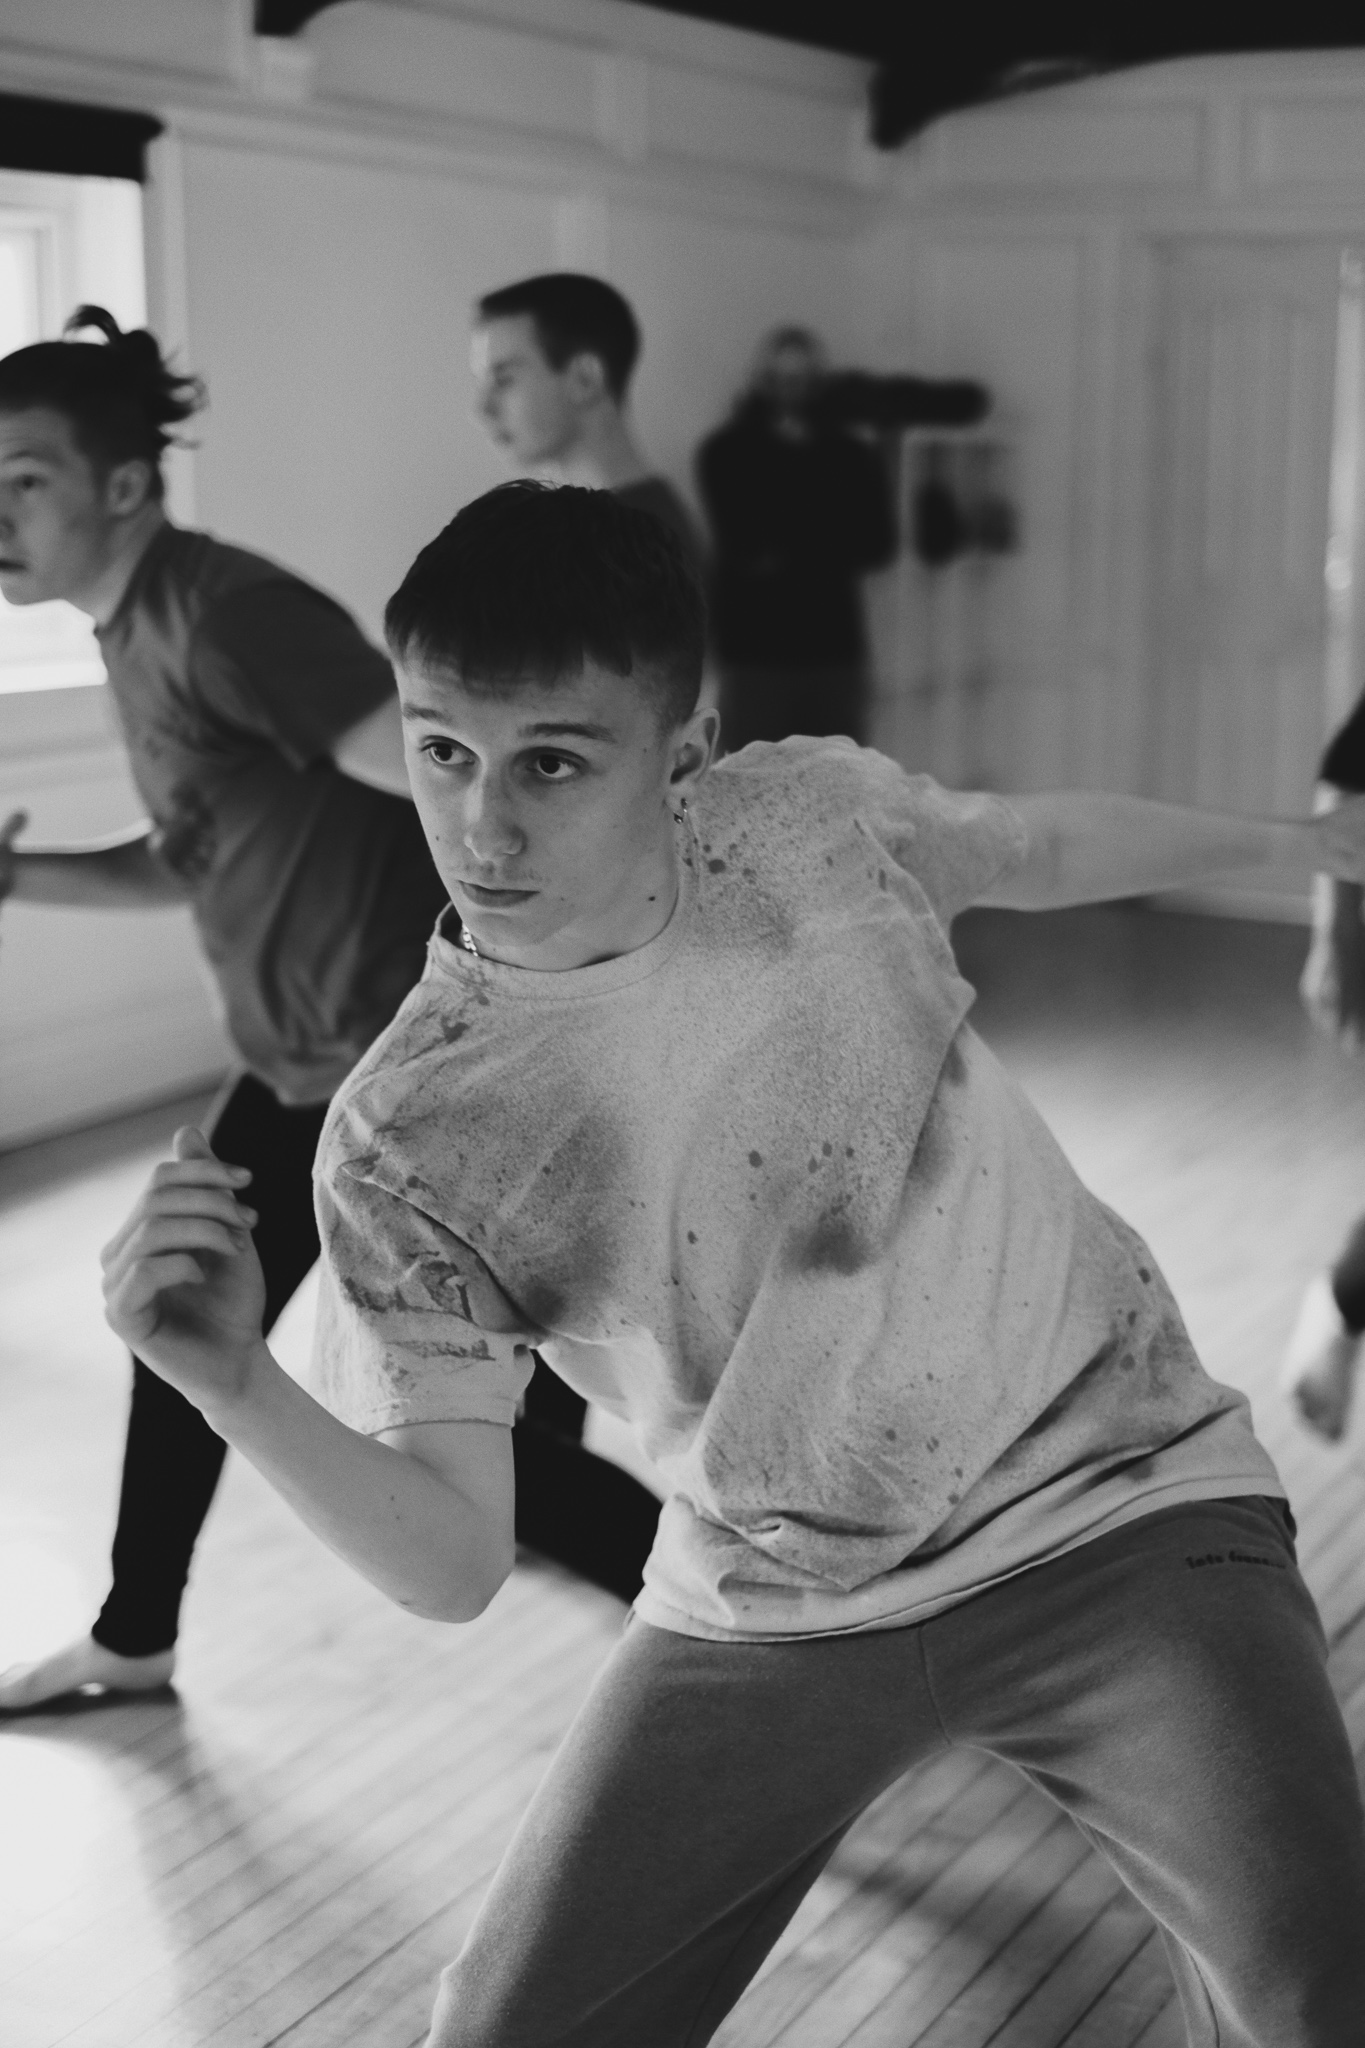 A group of teenage boys move together during a dance rehearsal